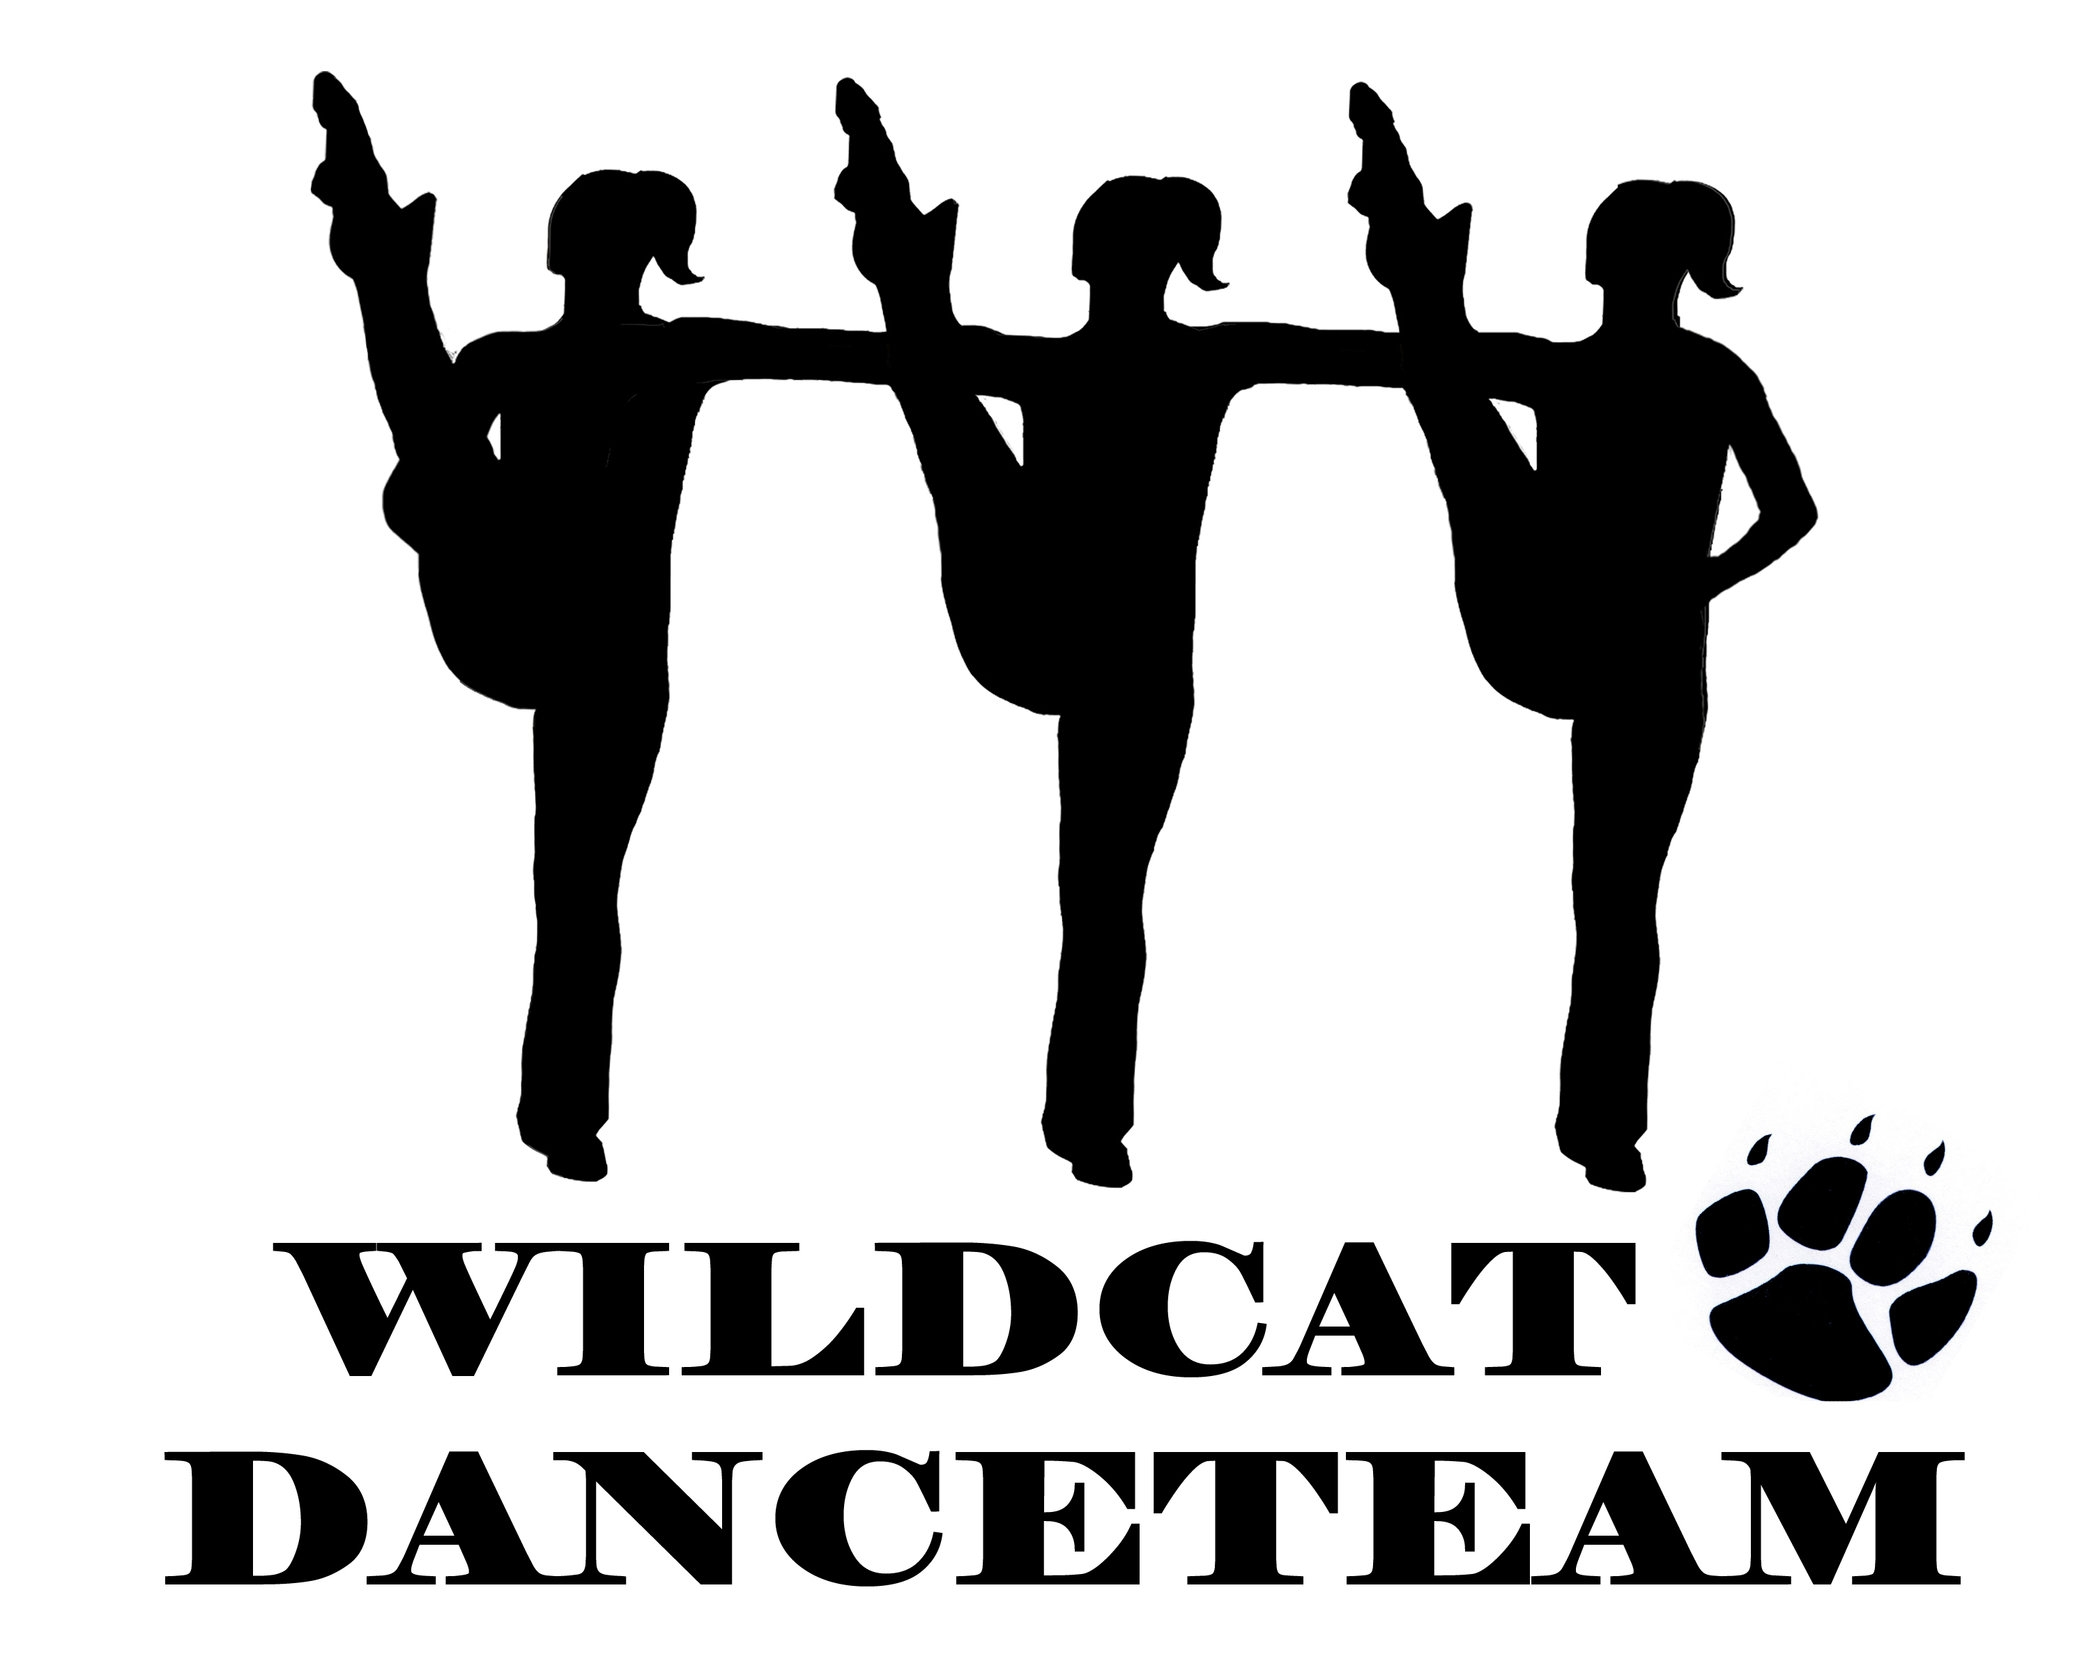 High school drill team kick clipart.